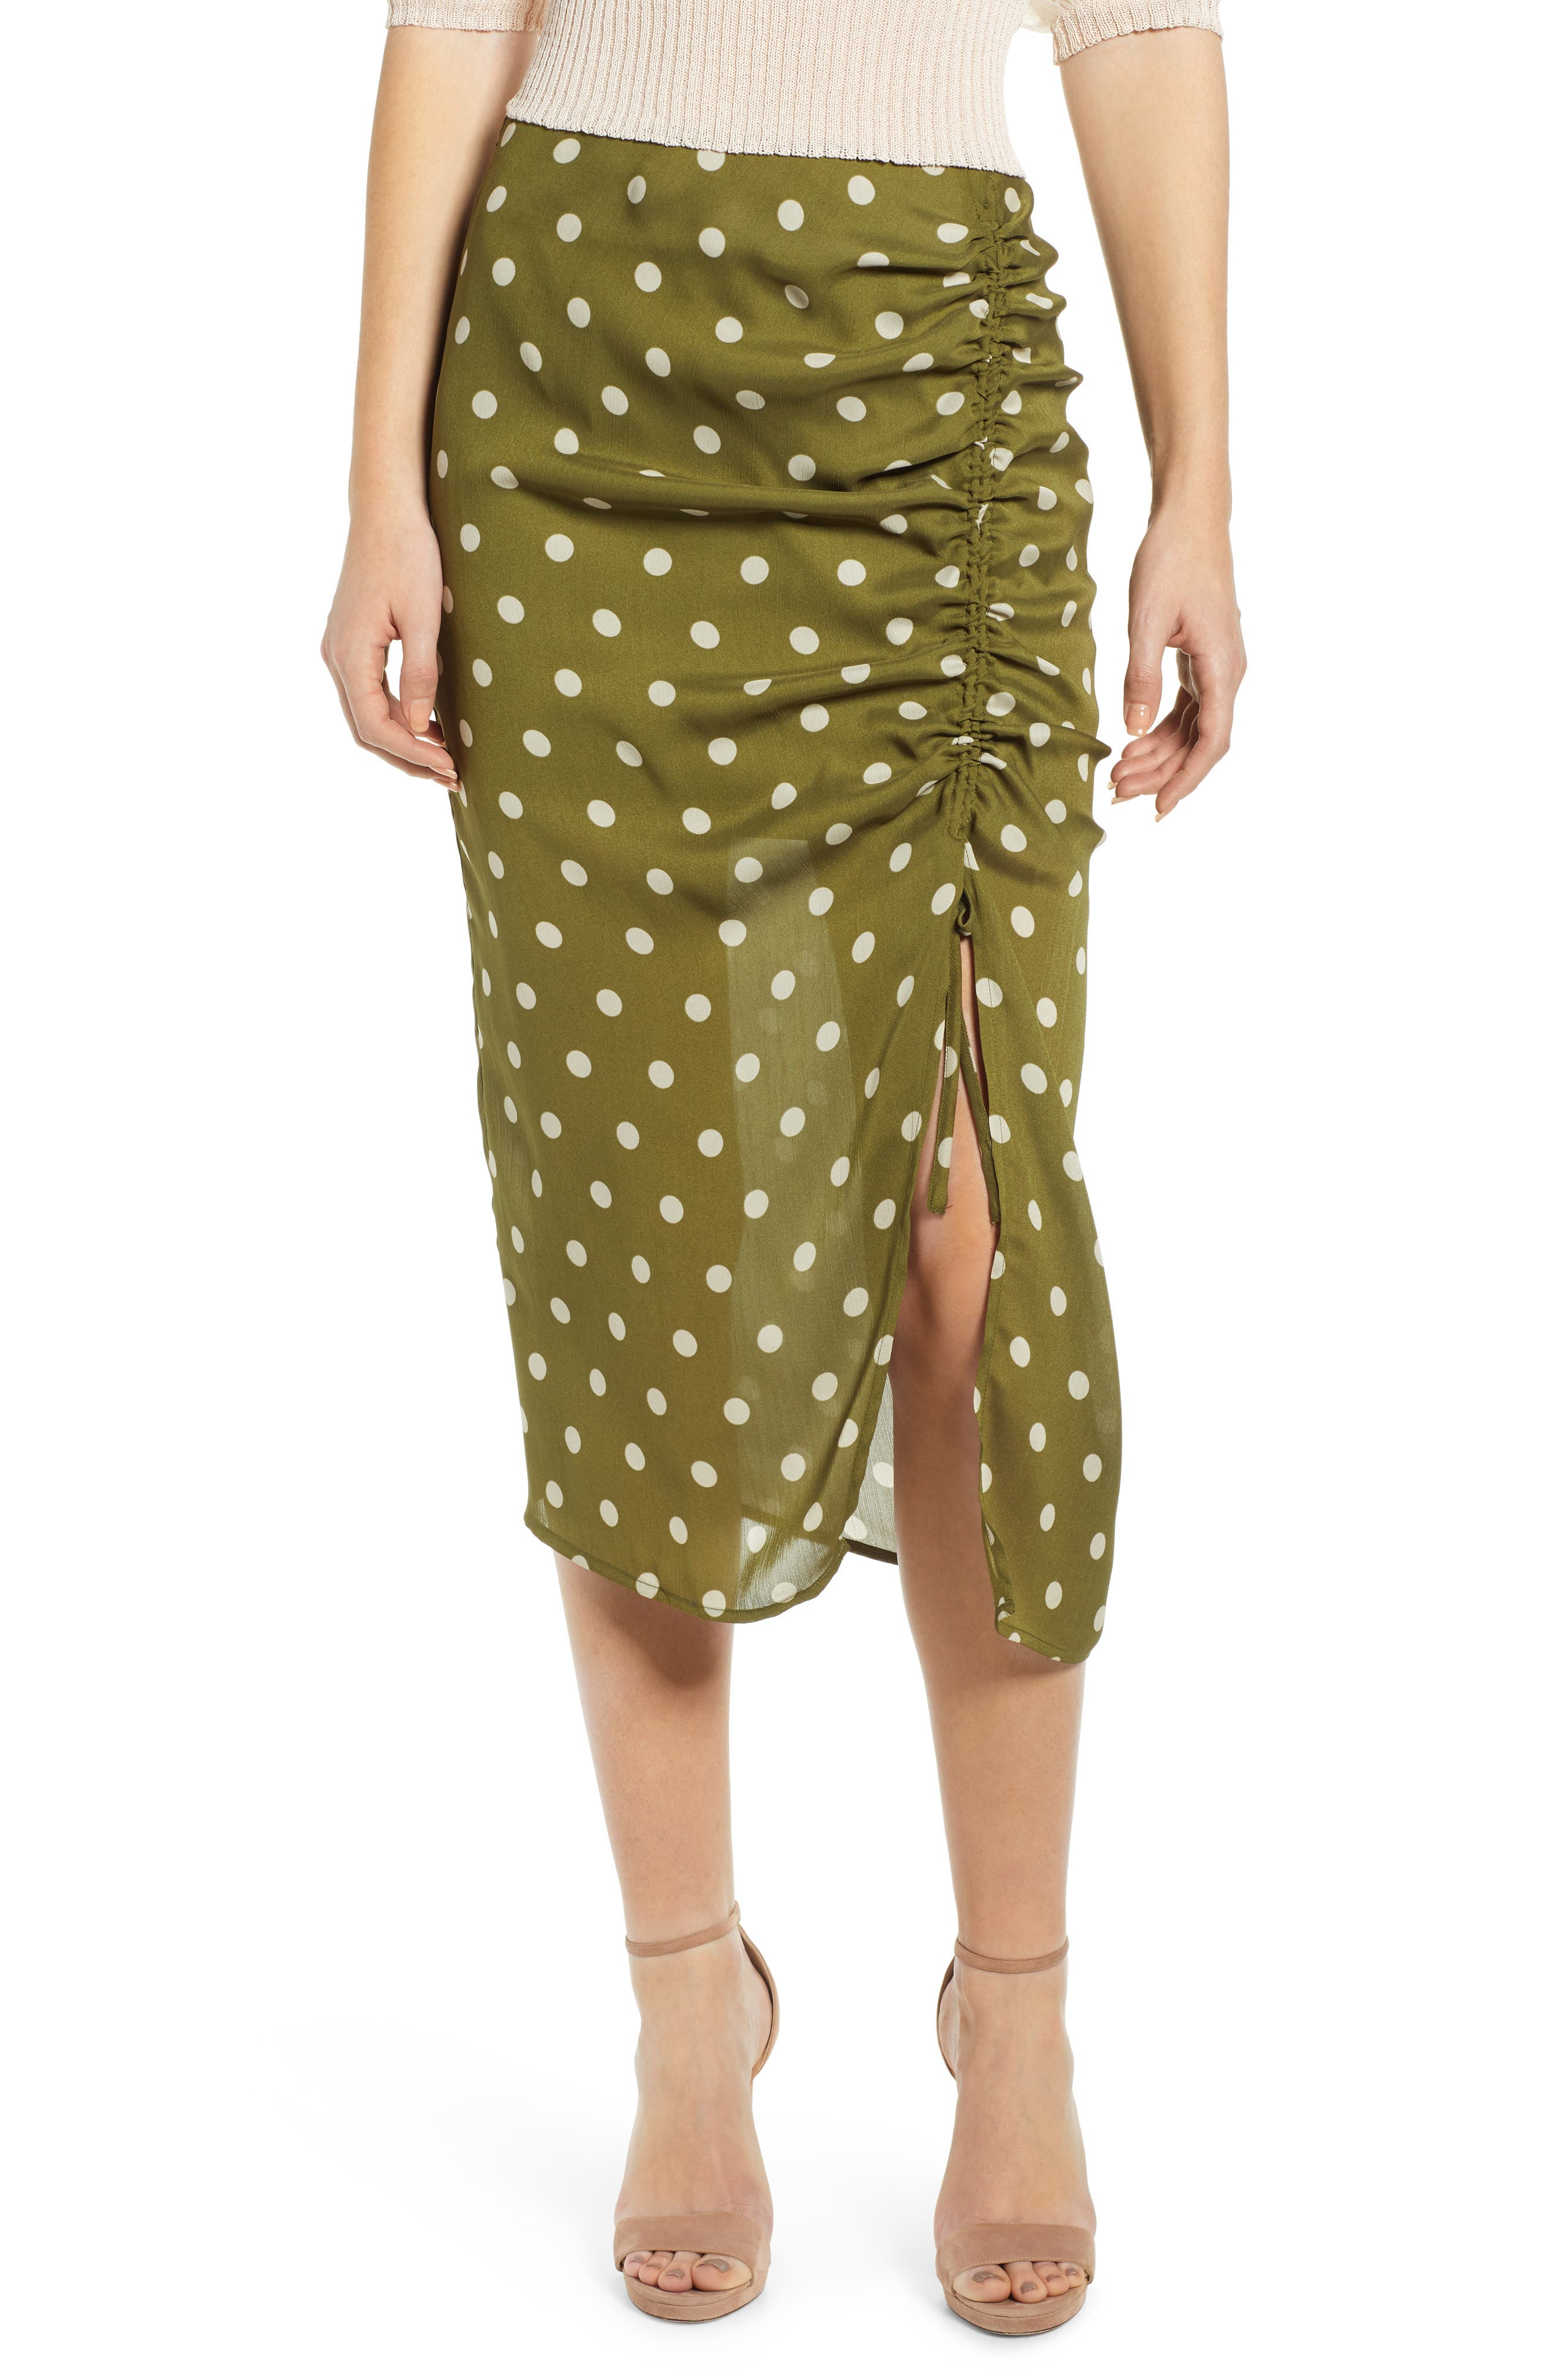 CHRISELLE LIM COLLECTION Chriselle Lim Ren Ruched Skirt, Main, color, CREAM/ OLIVE